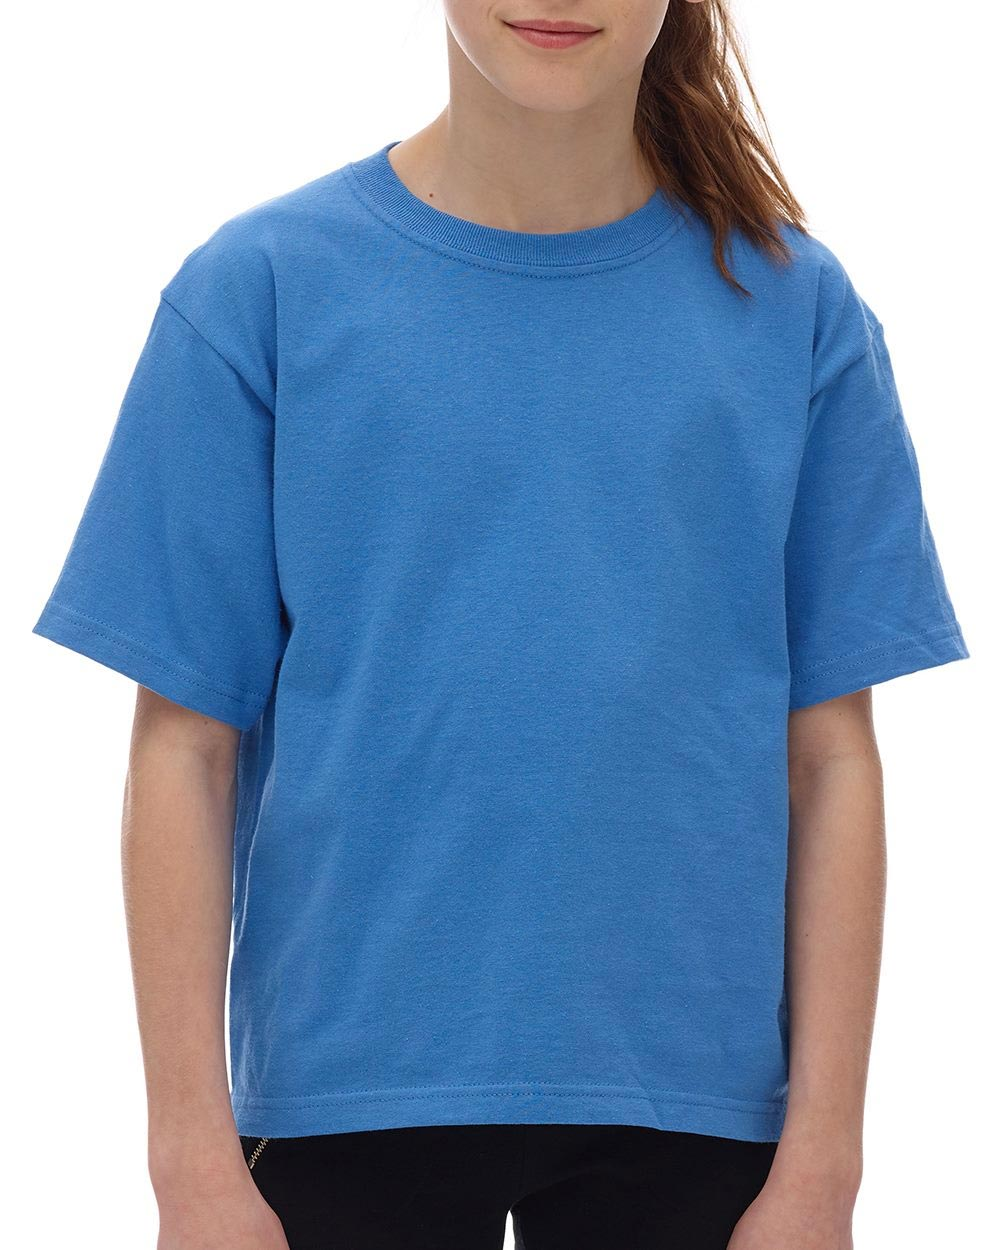 M&O Knits 4850 - Youth Gold Soft Touch T-Shirt